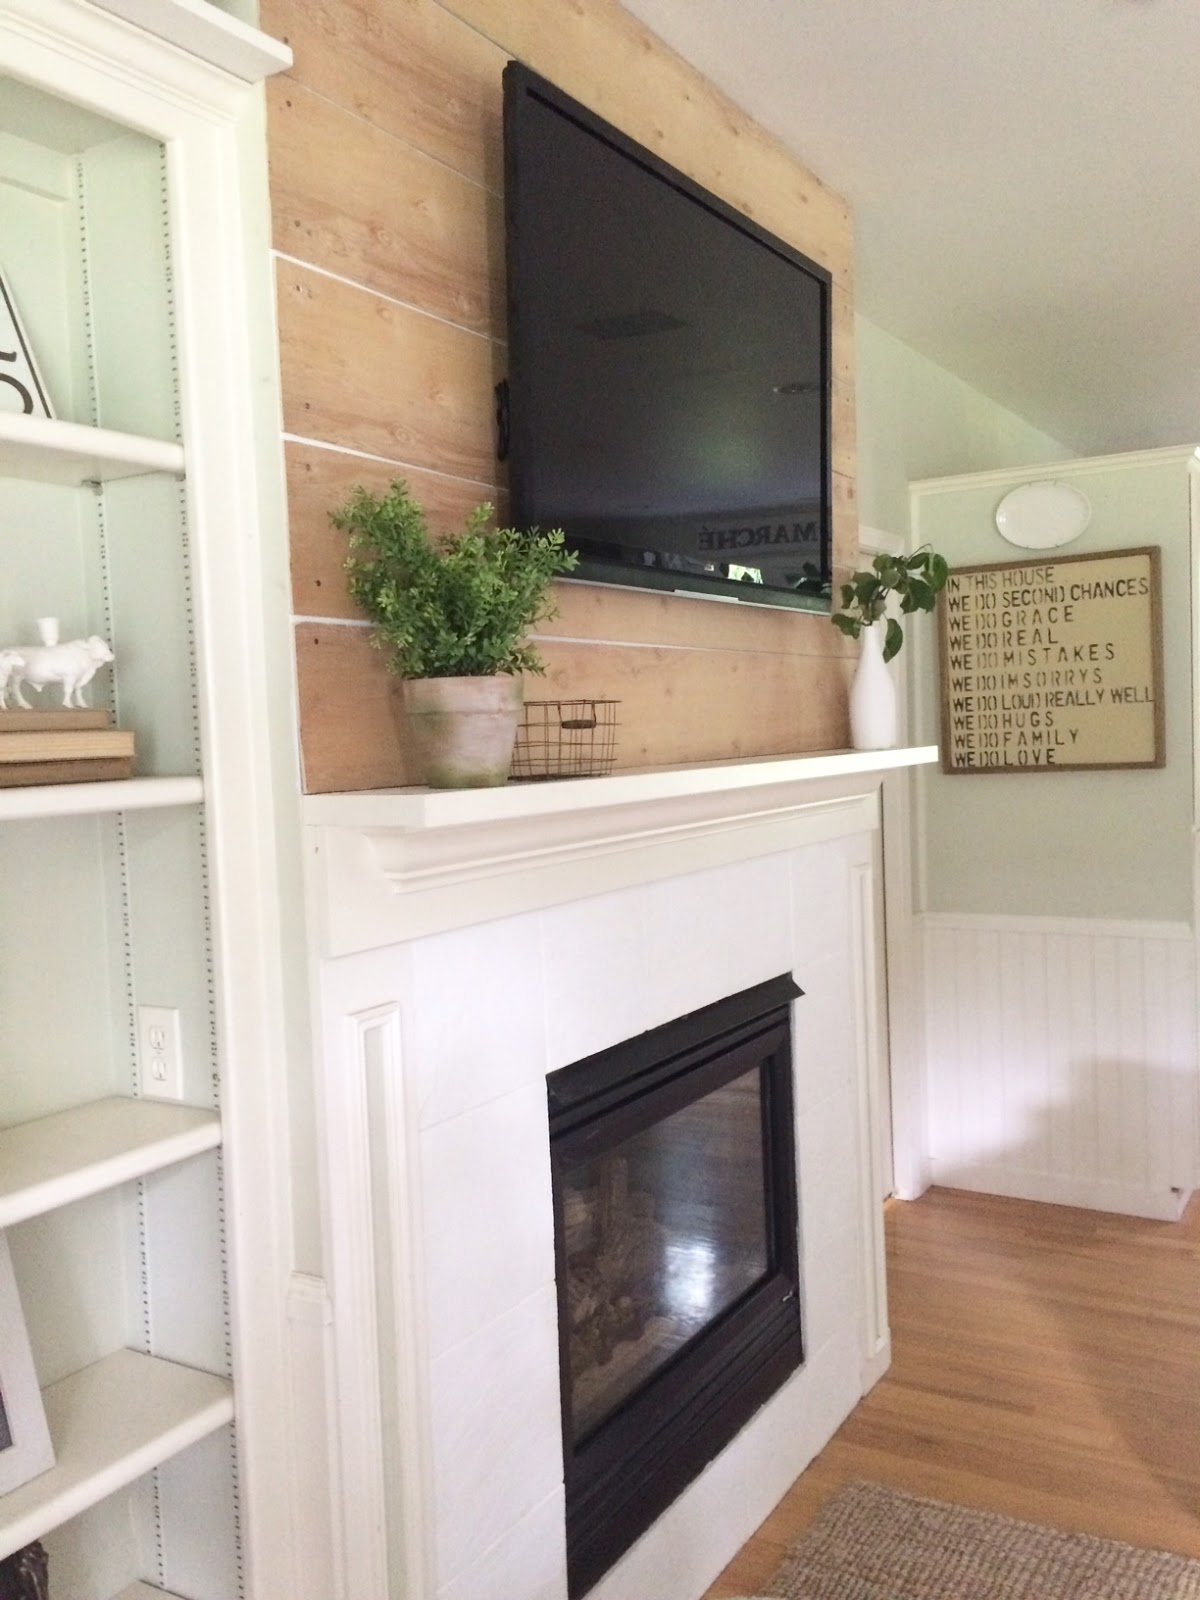 Wonderful Little Farmstead: Farmhouse Style: Shiplap Above the Fireplace  LA64